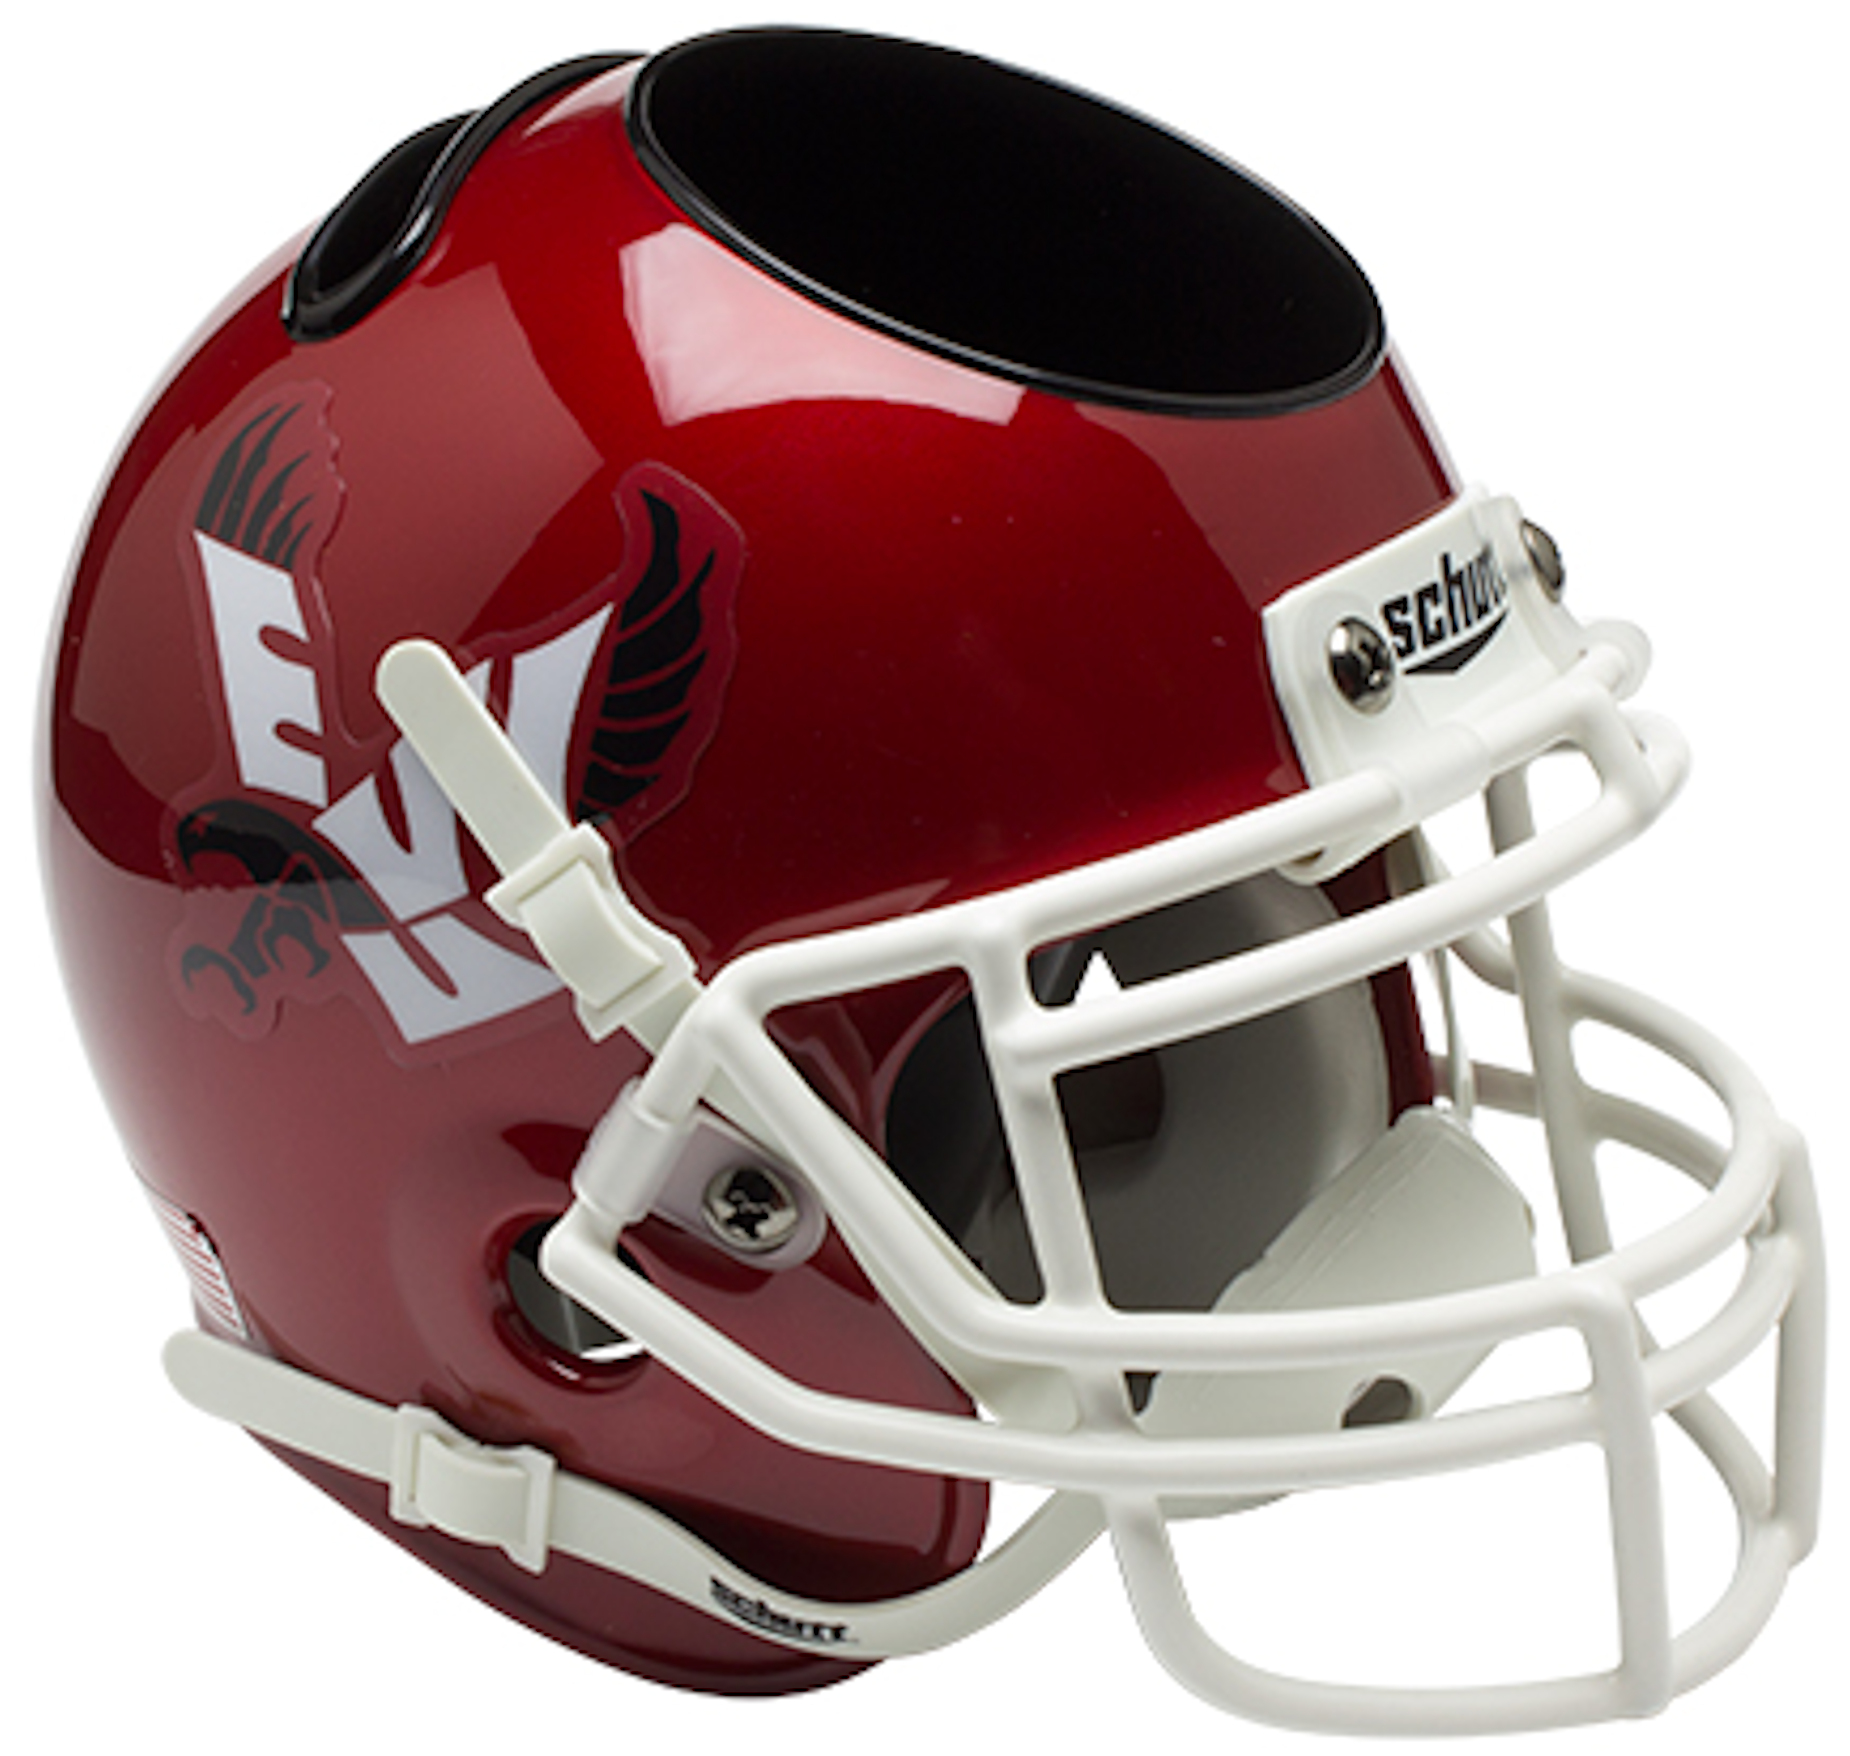 Eastern Washington Eagles Miniature Football Helmet Desk Caddy